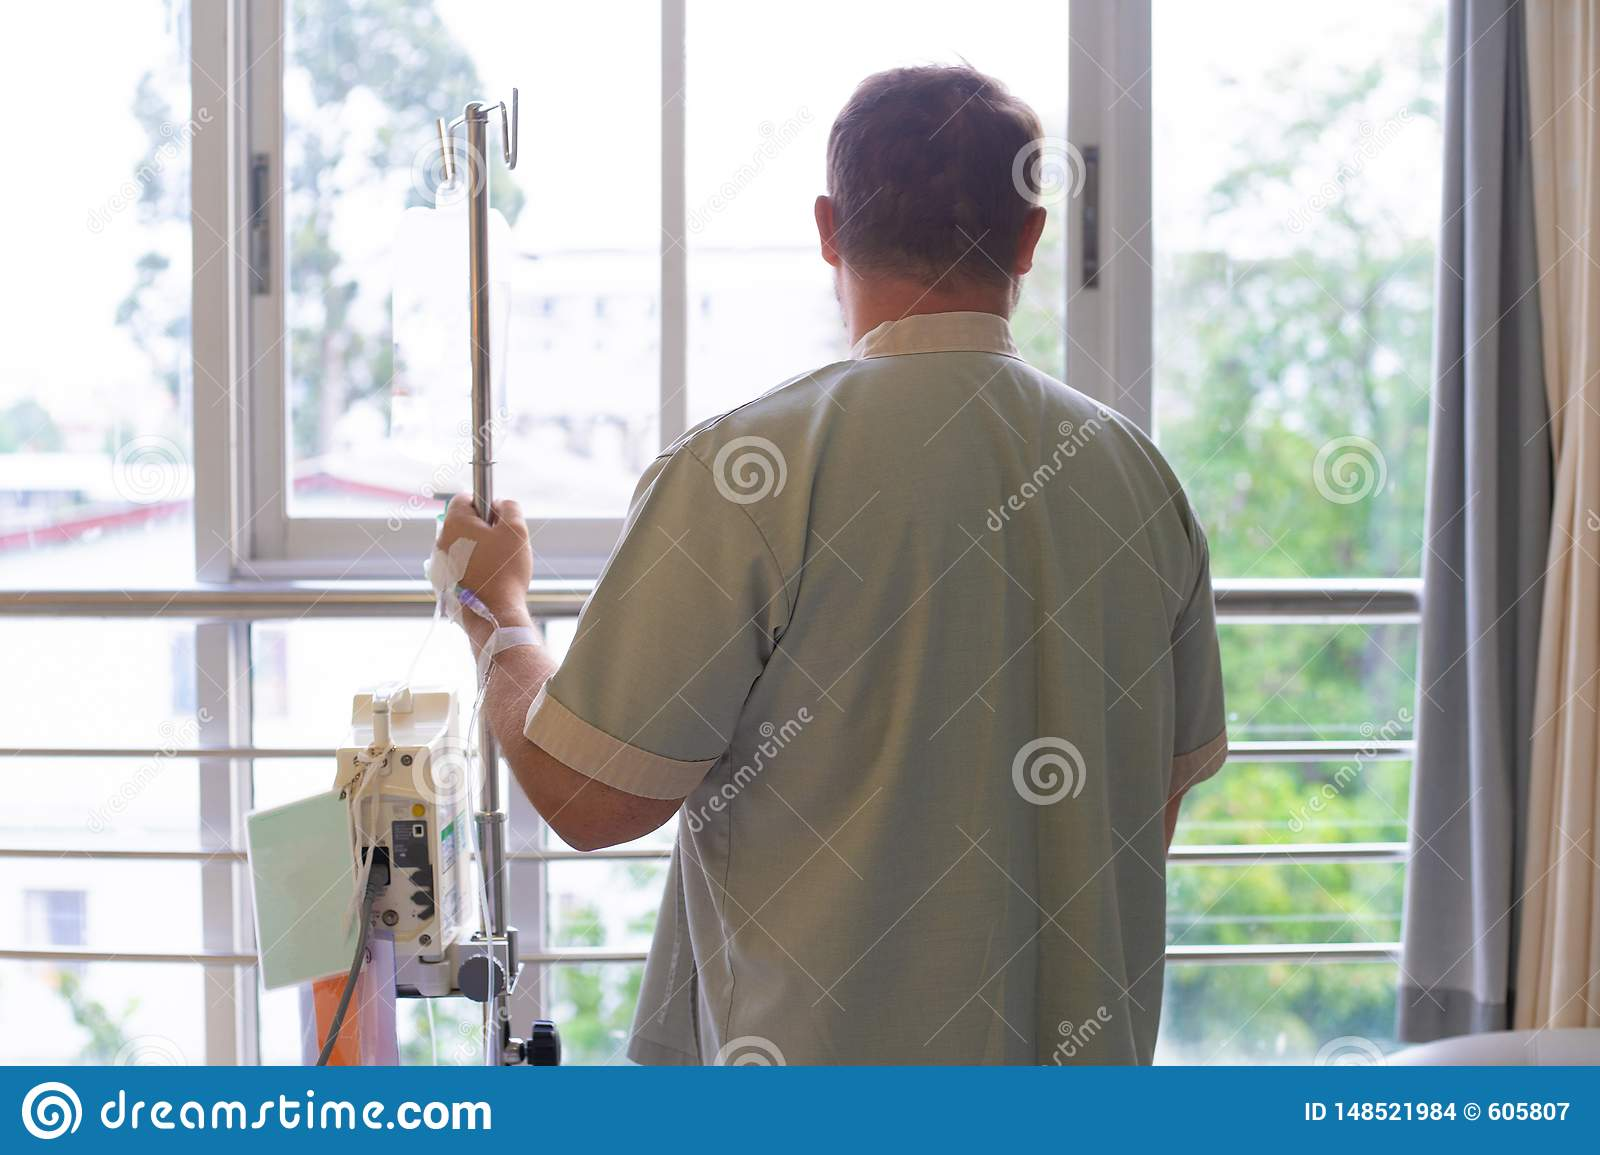 Patient with a dropper looks out the window of the hospital room and smiles. back view. Healthcare concept.